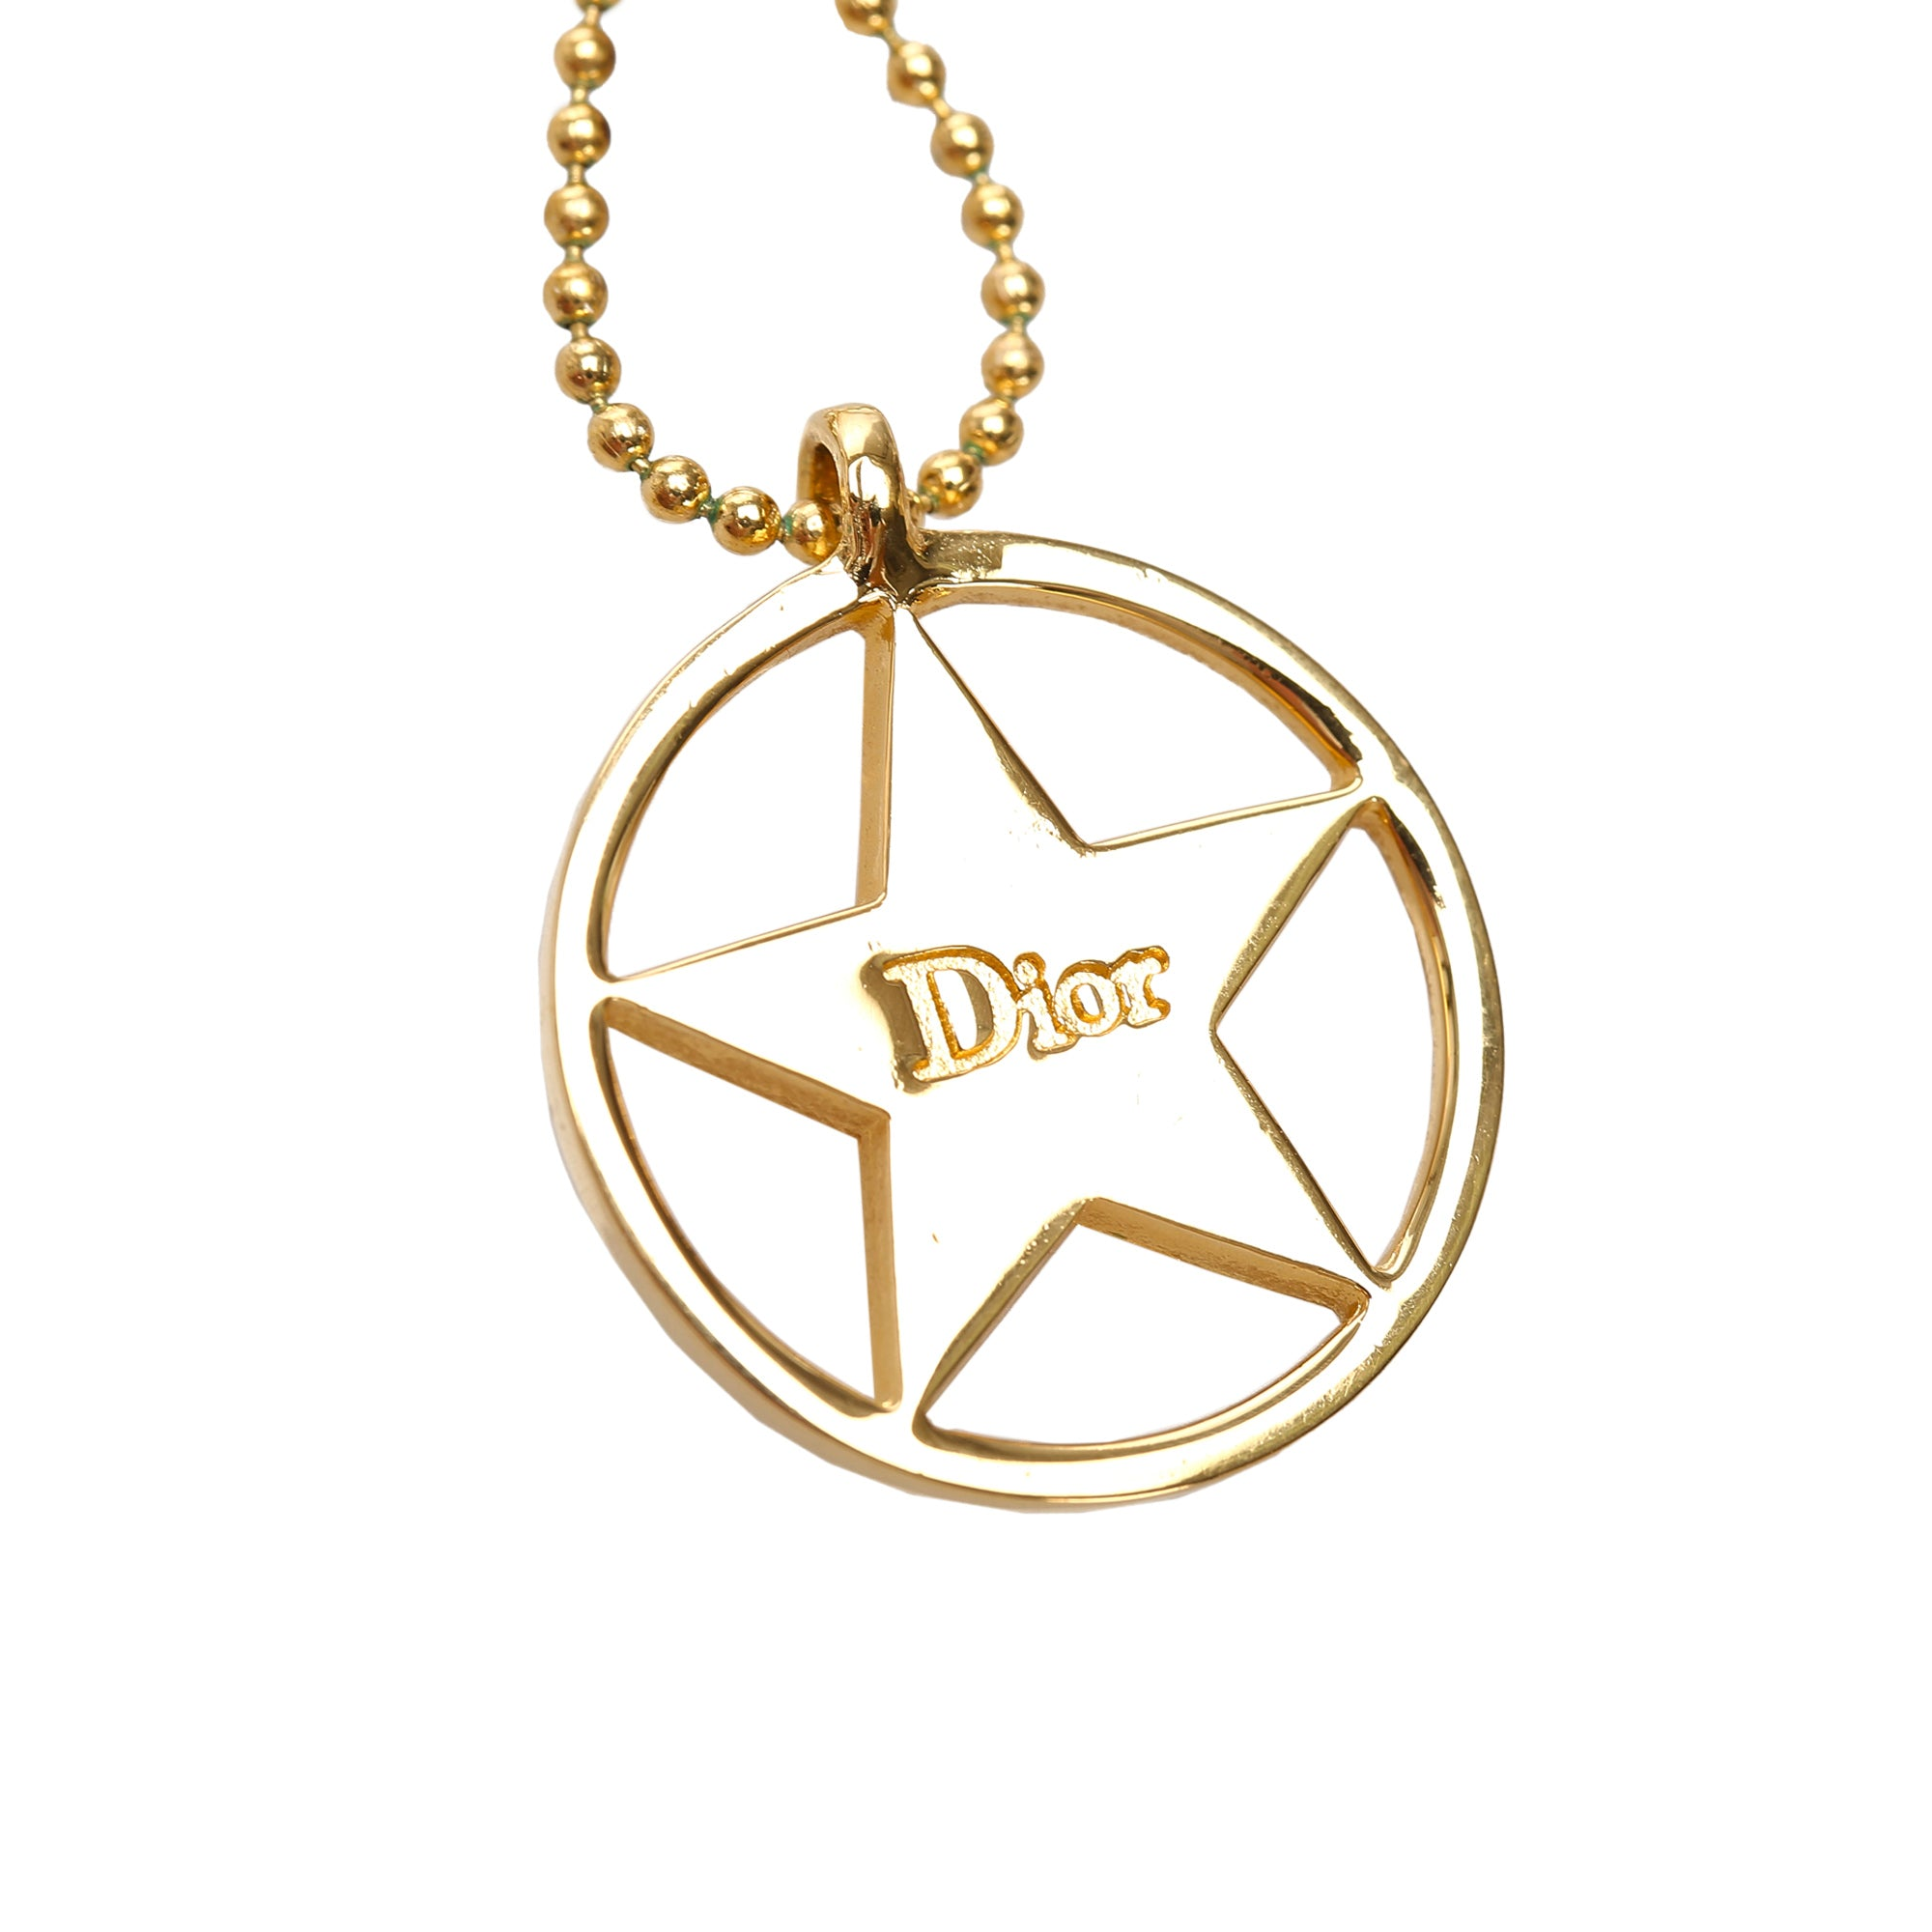 Dior Gold Circle Star Pendant Necklace